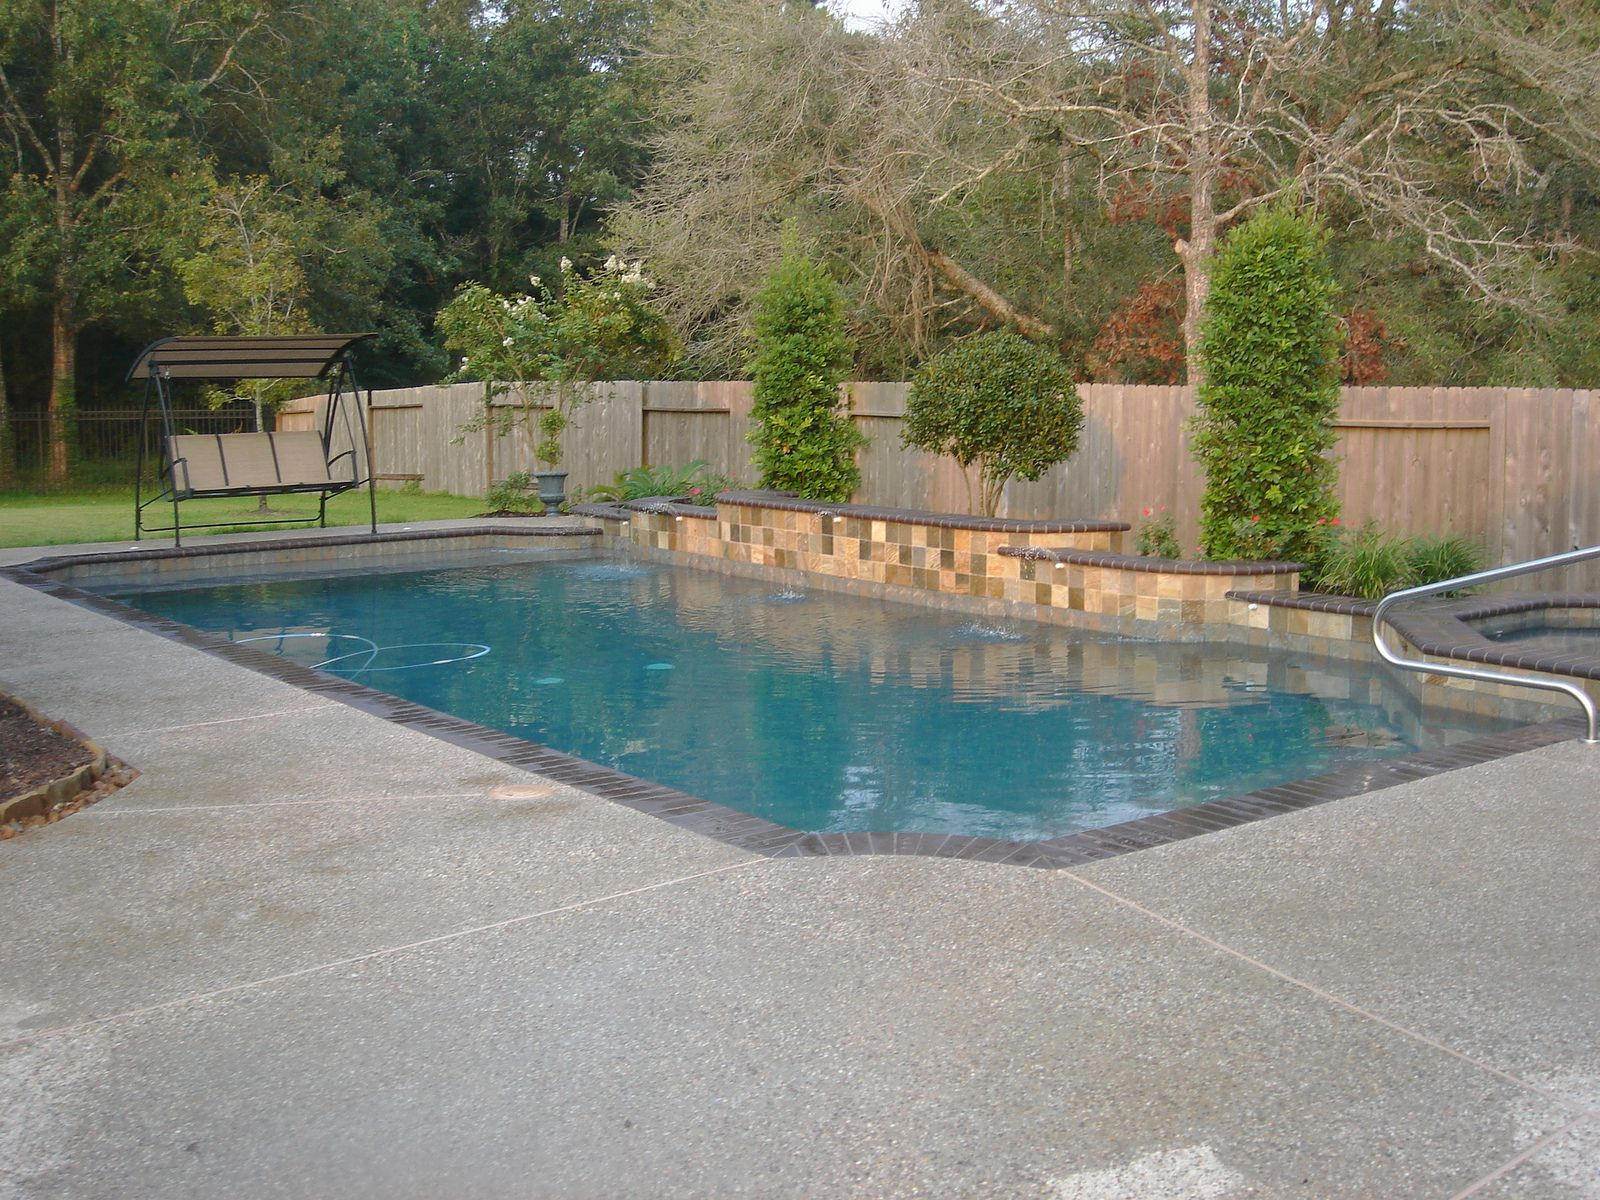 Design Simple Swimming Pool With Fountains And A Swing Seat